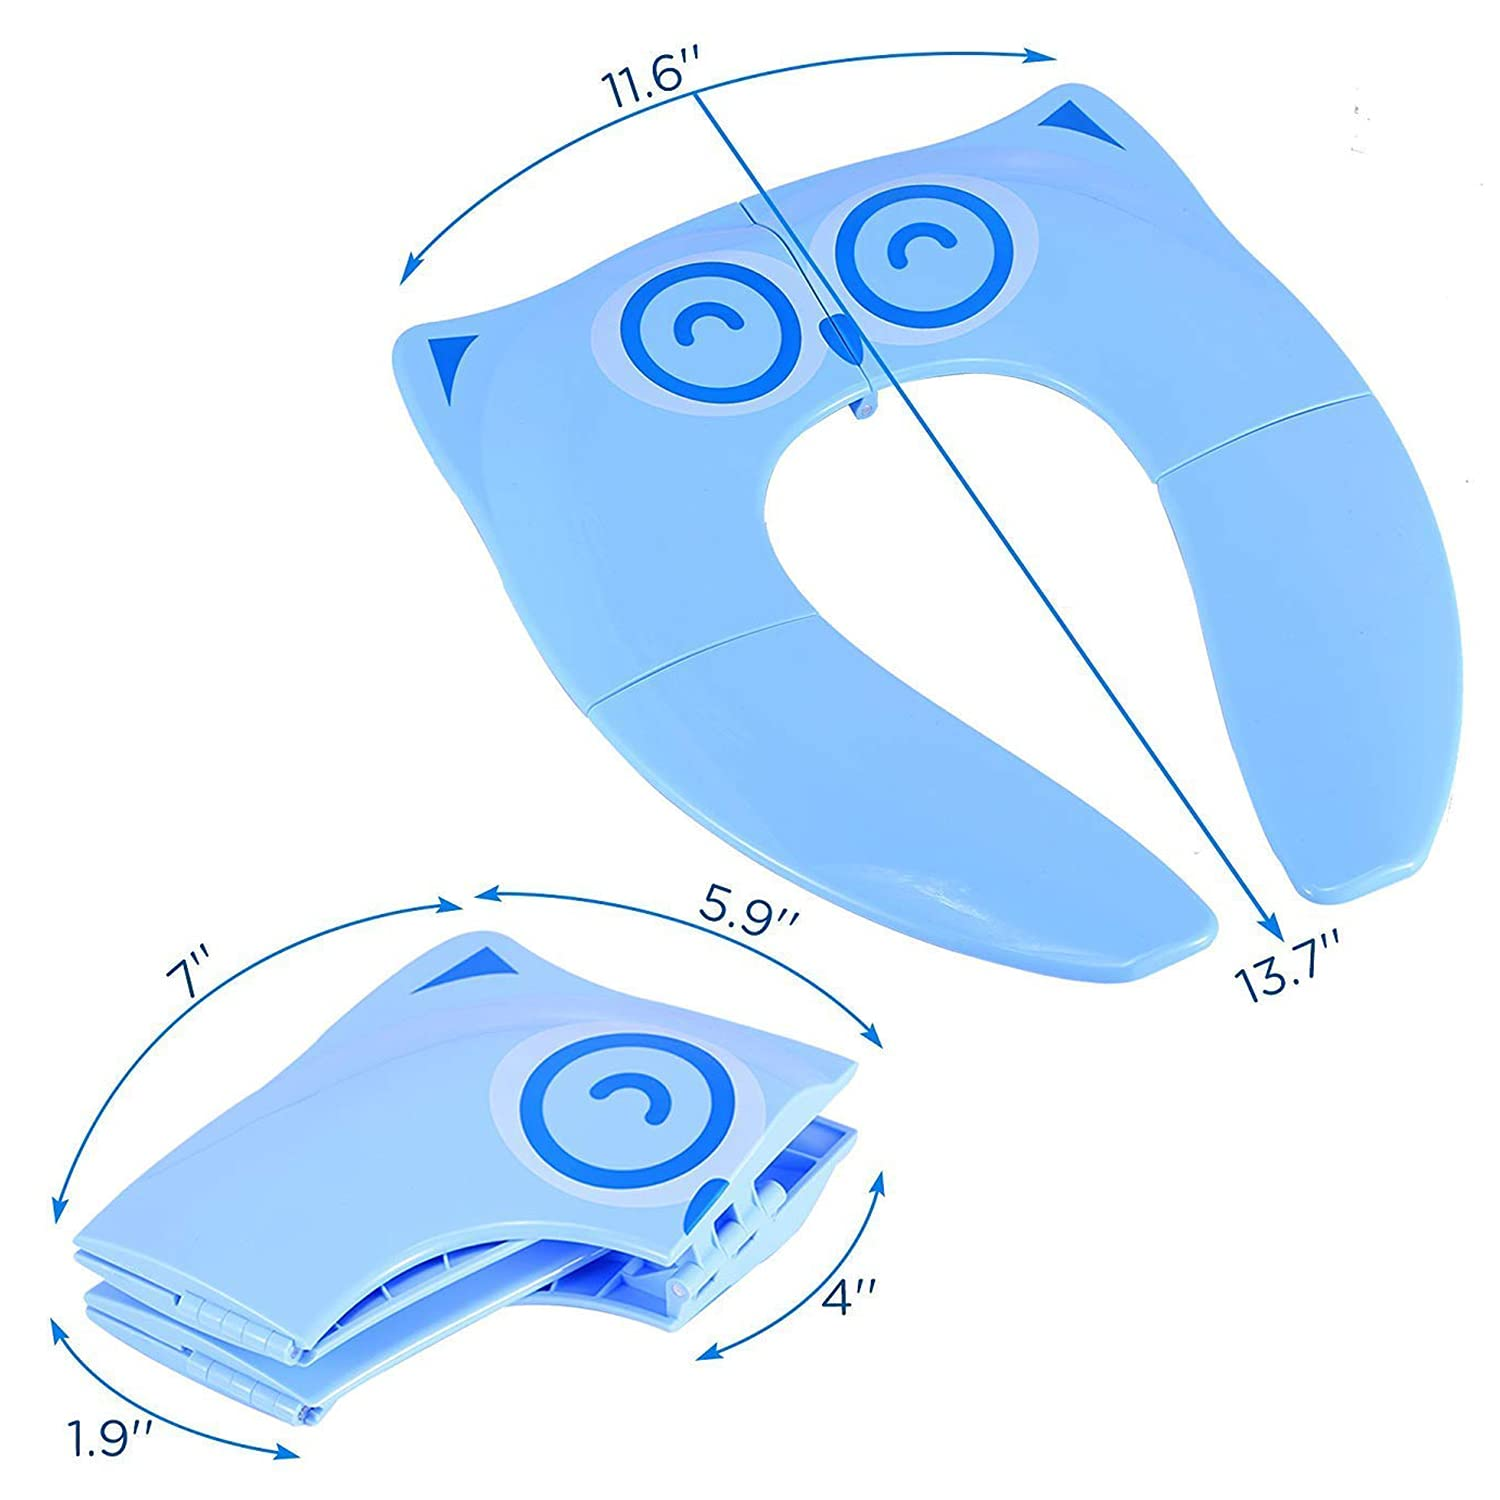 Portable Potty Seat for Toddler Toilet Training Folding Travel Training Seat for Boys and Girls - Round & Oval Toilets, Non-Slip Grip, with Free Drawstring Travel Bag